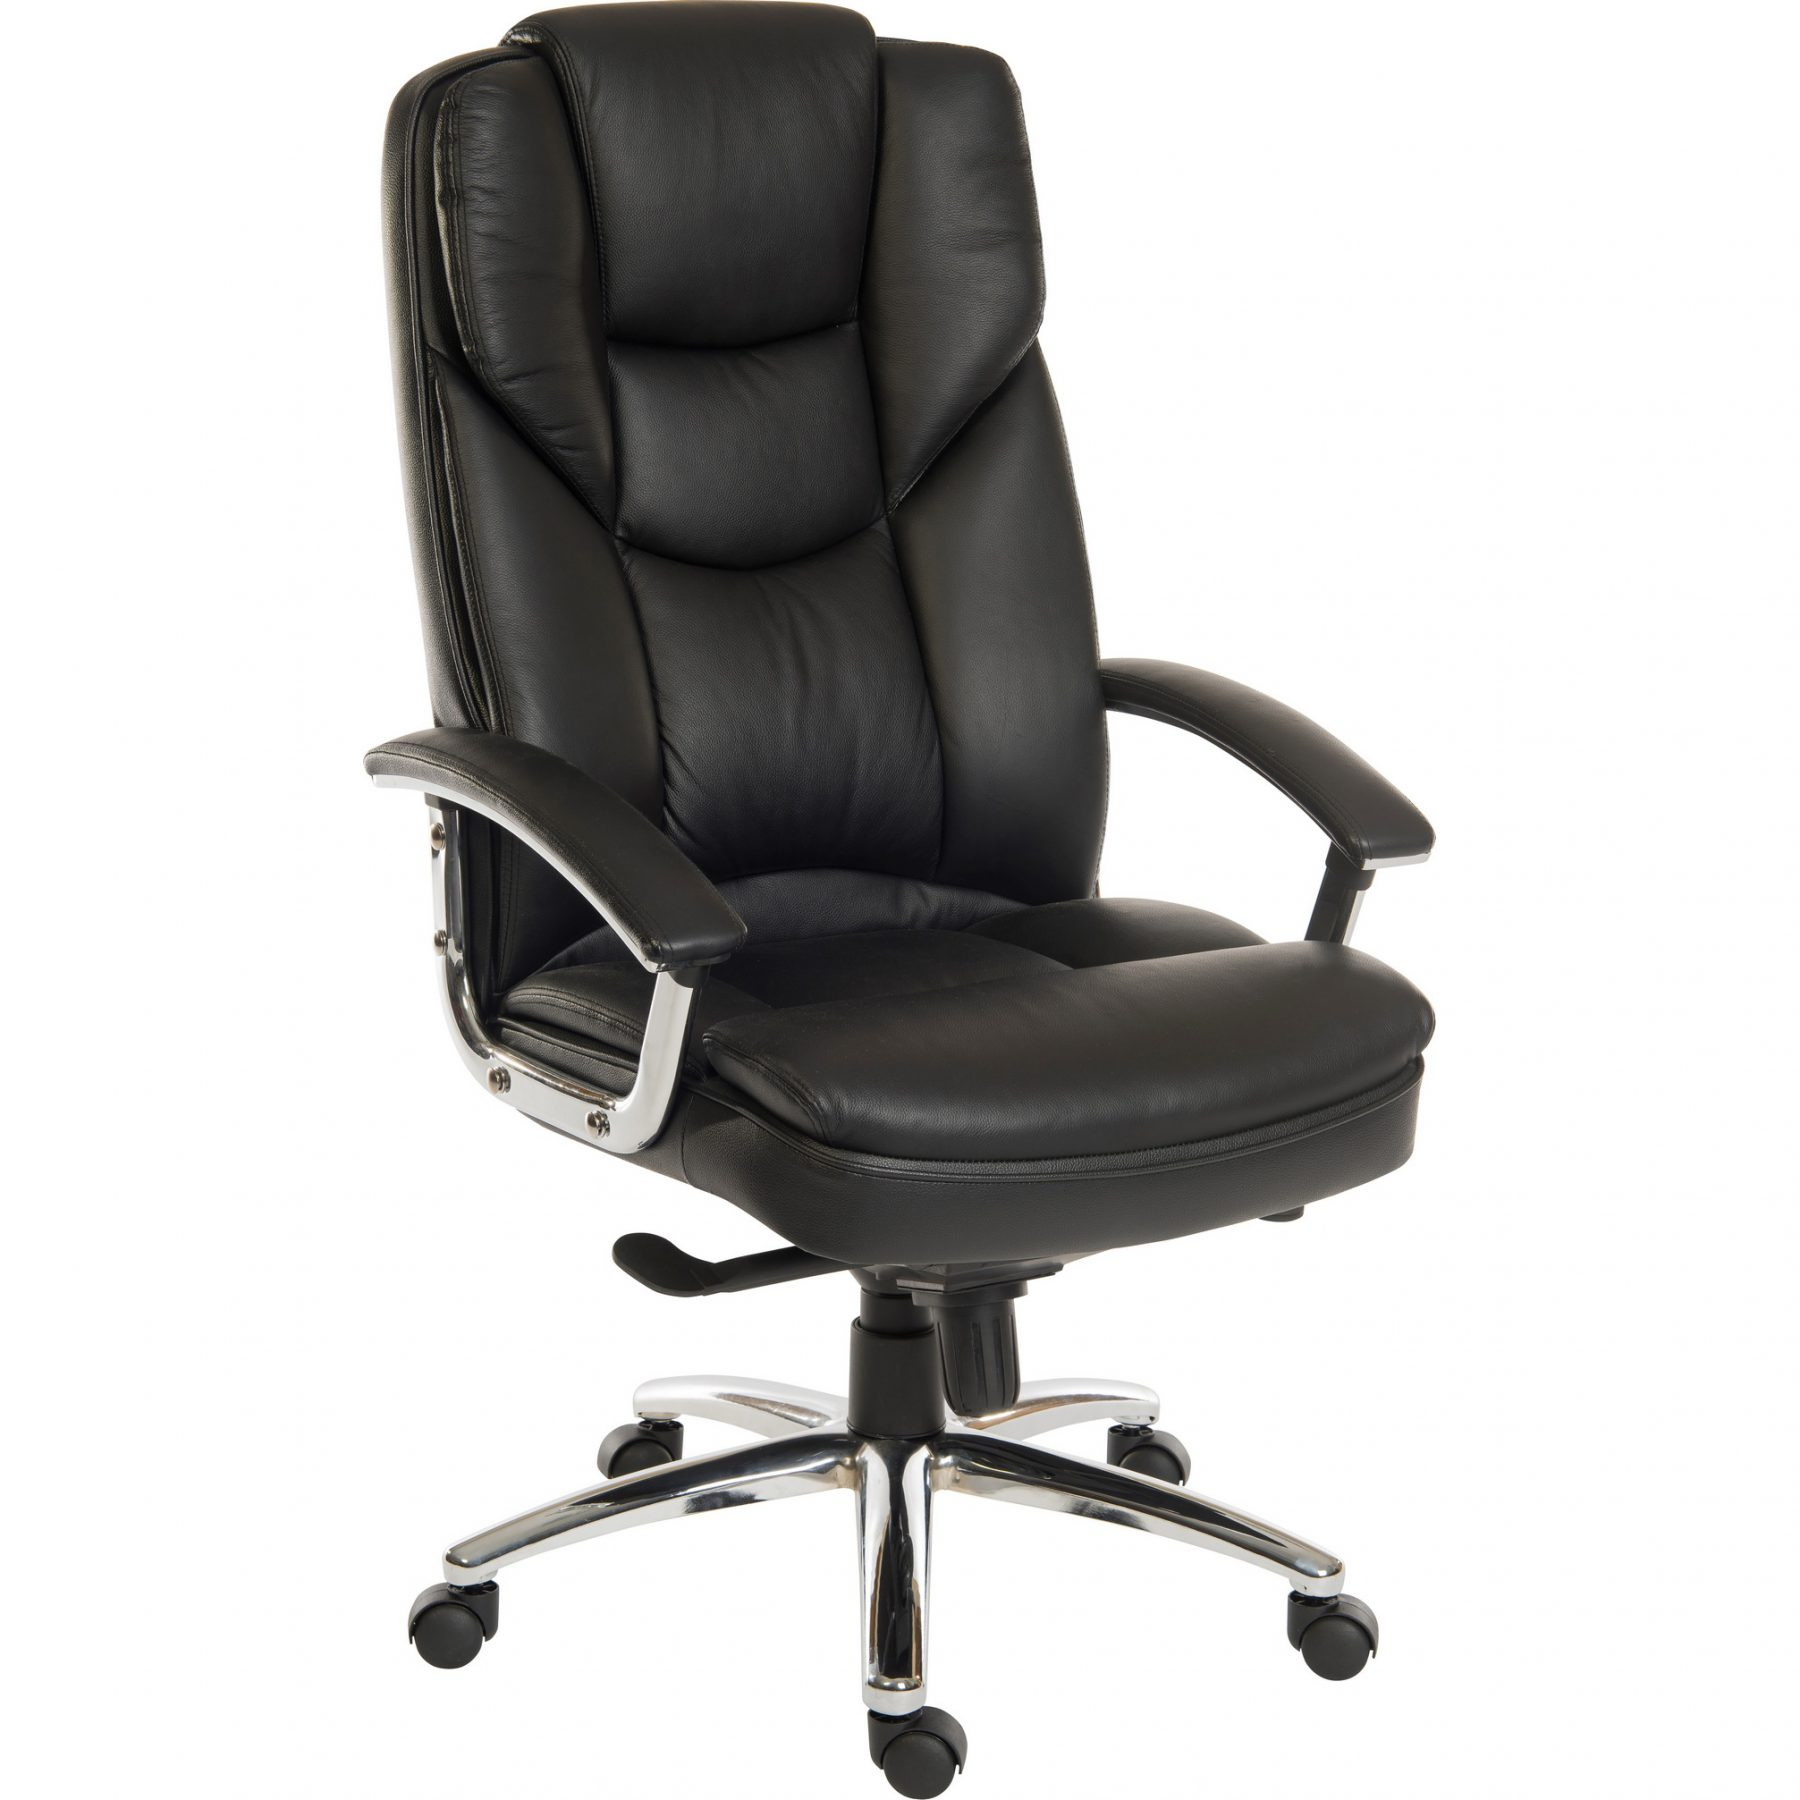 Leather Office Chairs Bromley Luxury Italian Leather Office Chair Black Home